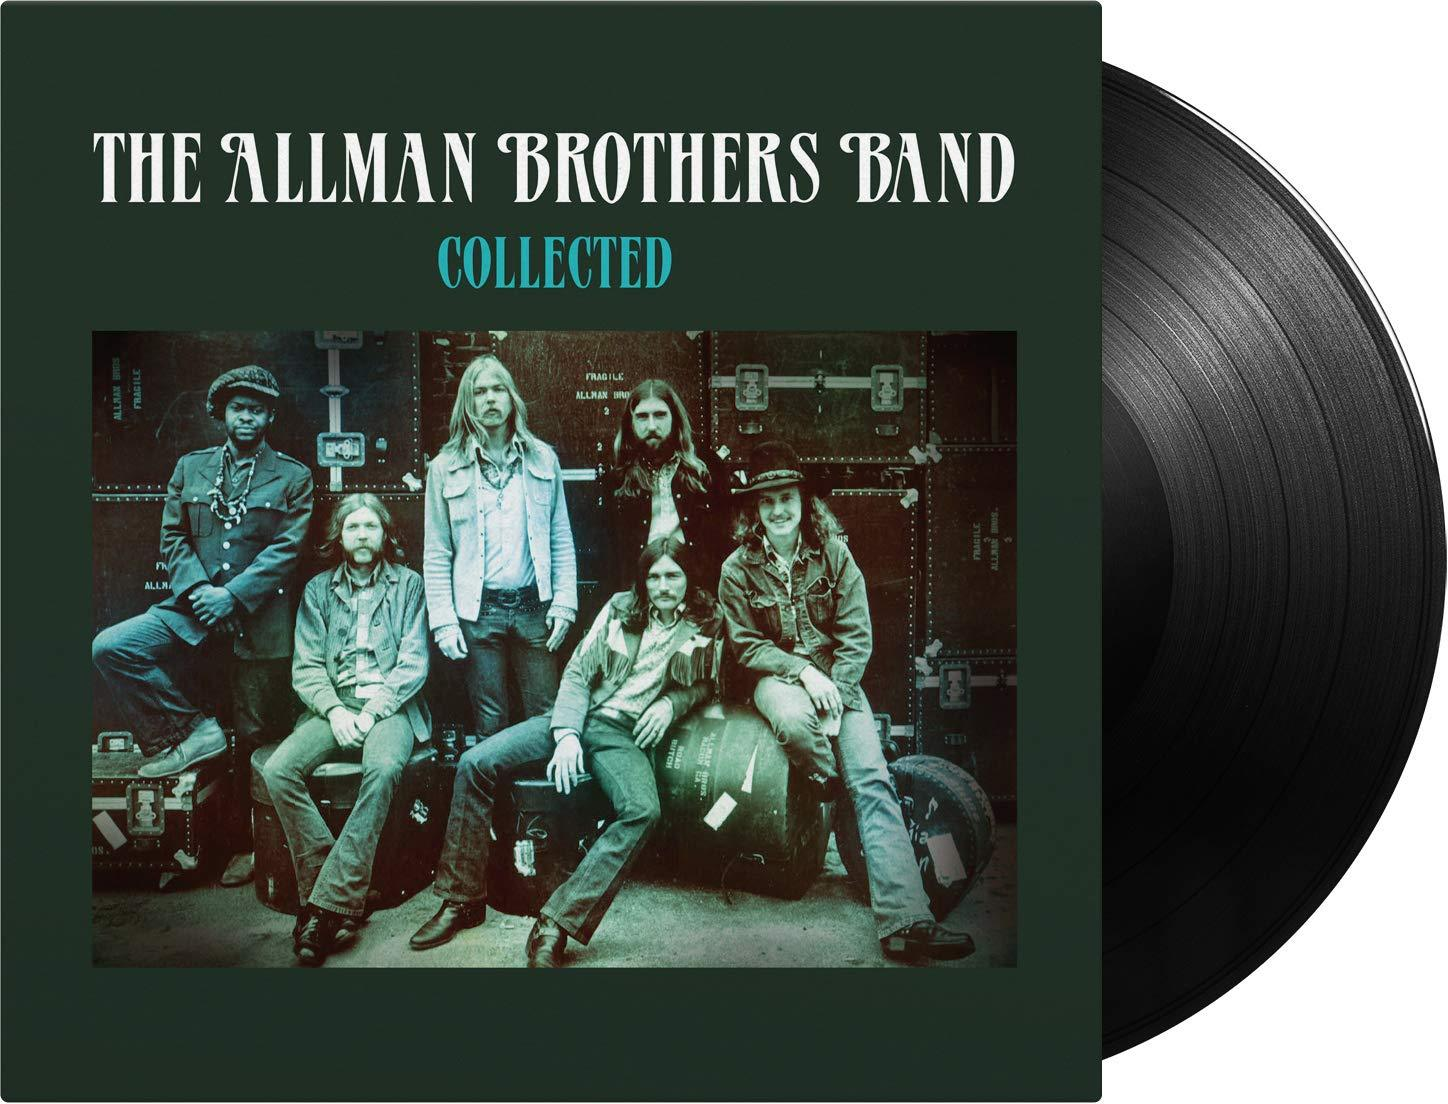 Allman Brothers Band - Collected [2LP] (180 Gram Black Audiophile Vinyl, gatefold, PVC sleeve, import) - Urban Vinyl | Records, Headphones, and more.